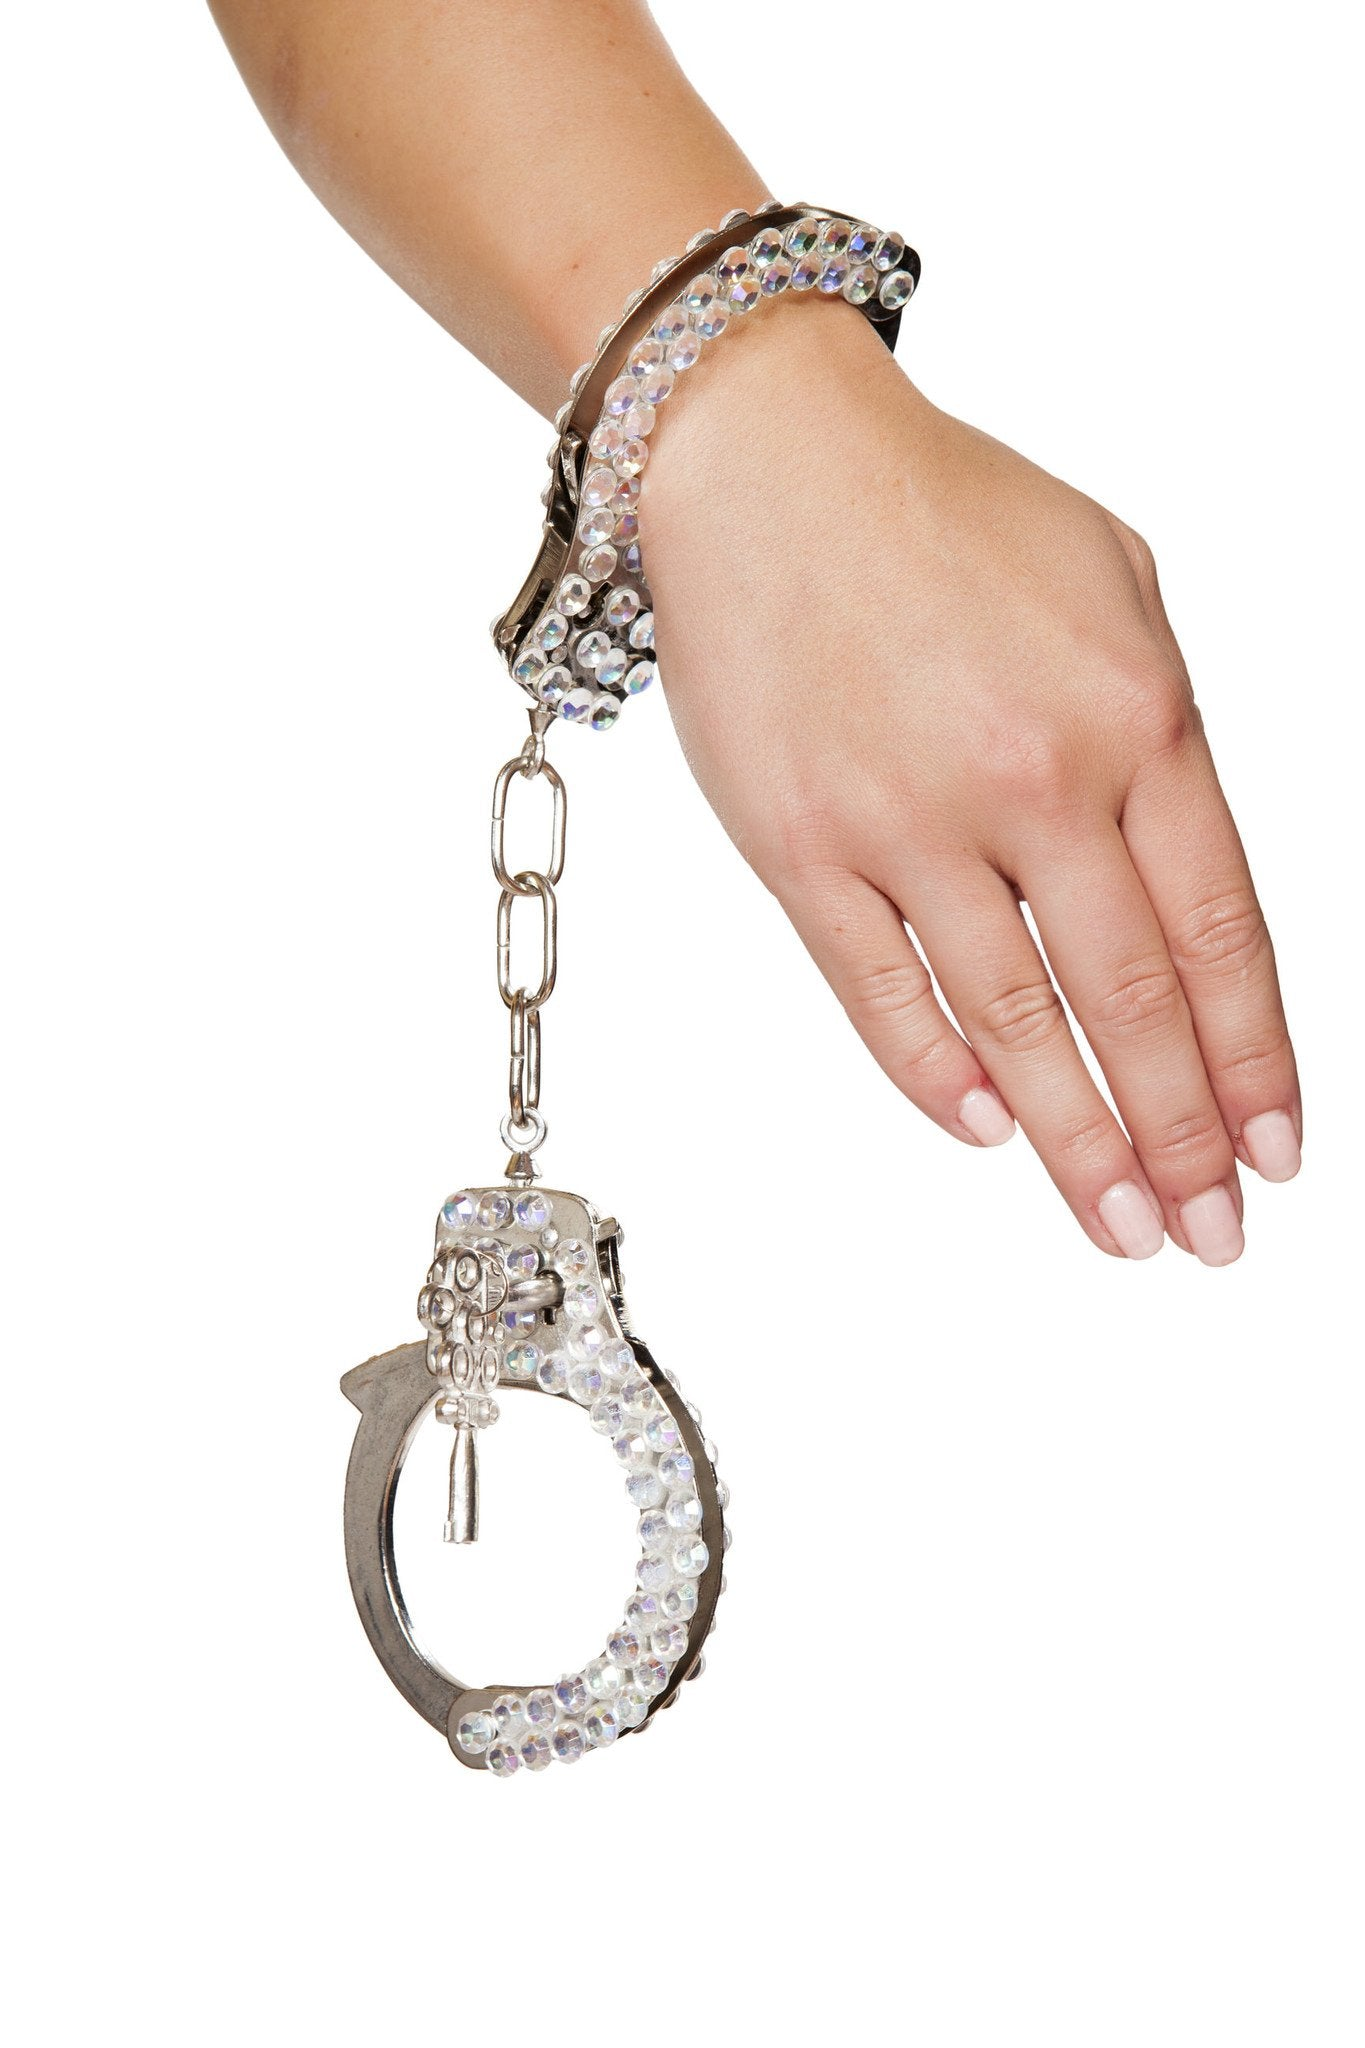 Buy Silver Handcuffs with Rhinestones from Rave Fix for $14.50 with Same Day Shipping Designed by Roma Costume CU102-AS-O/S